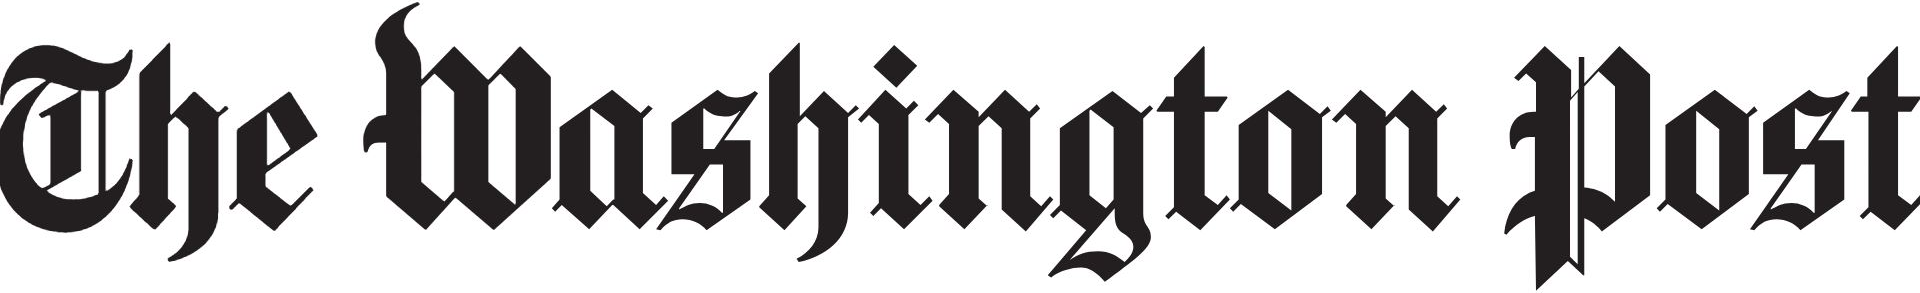 Washington Post logo font?.